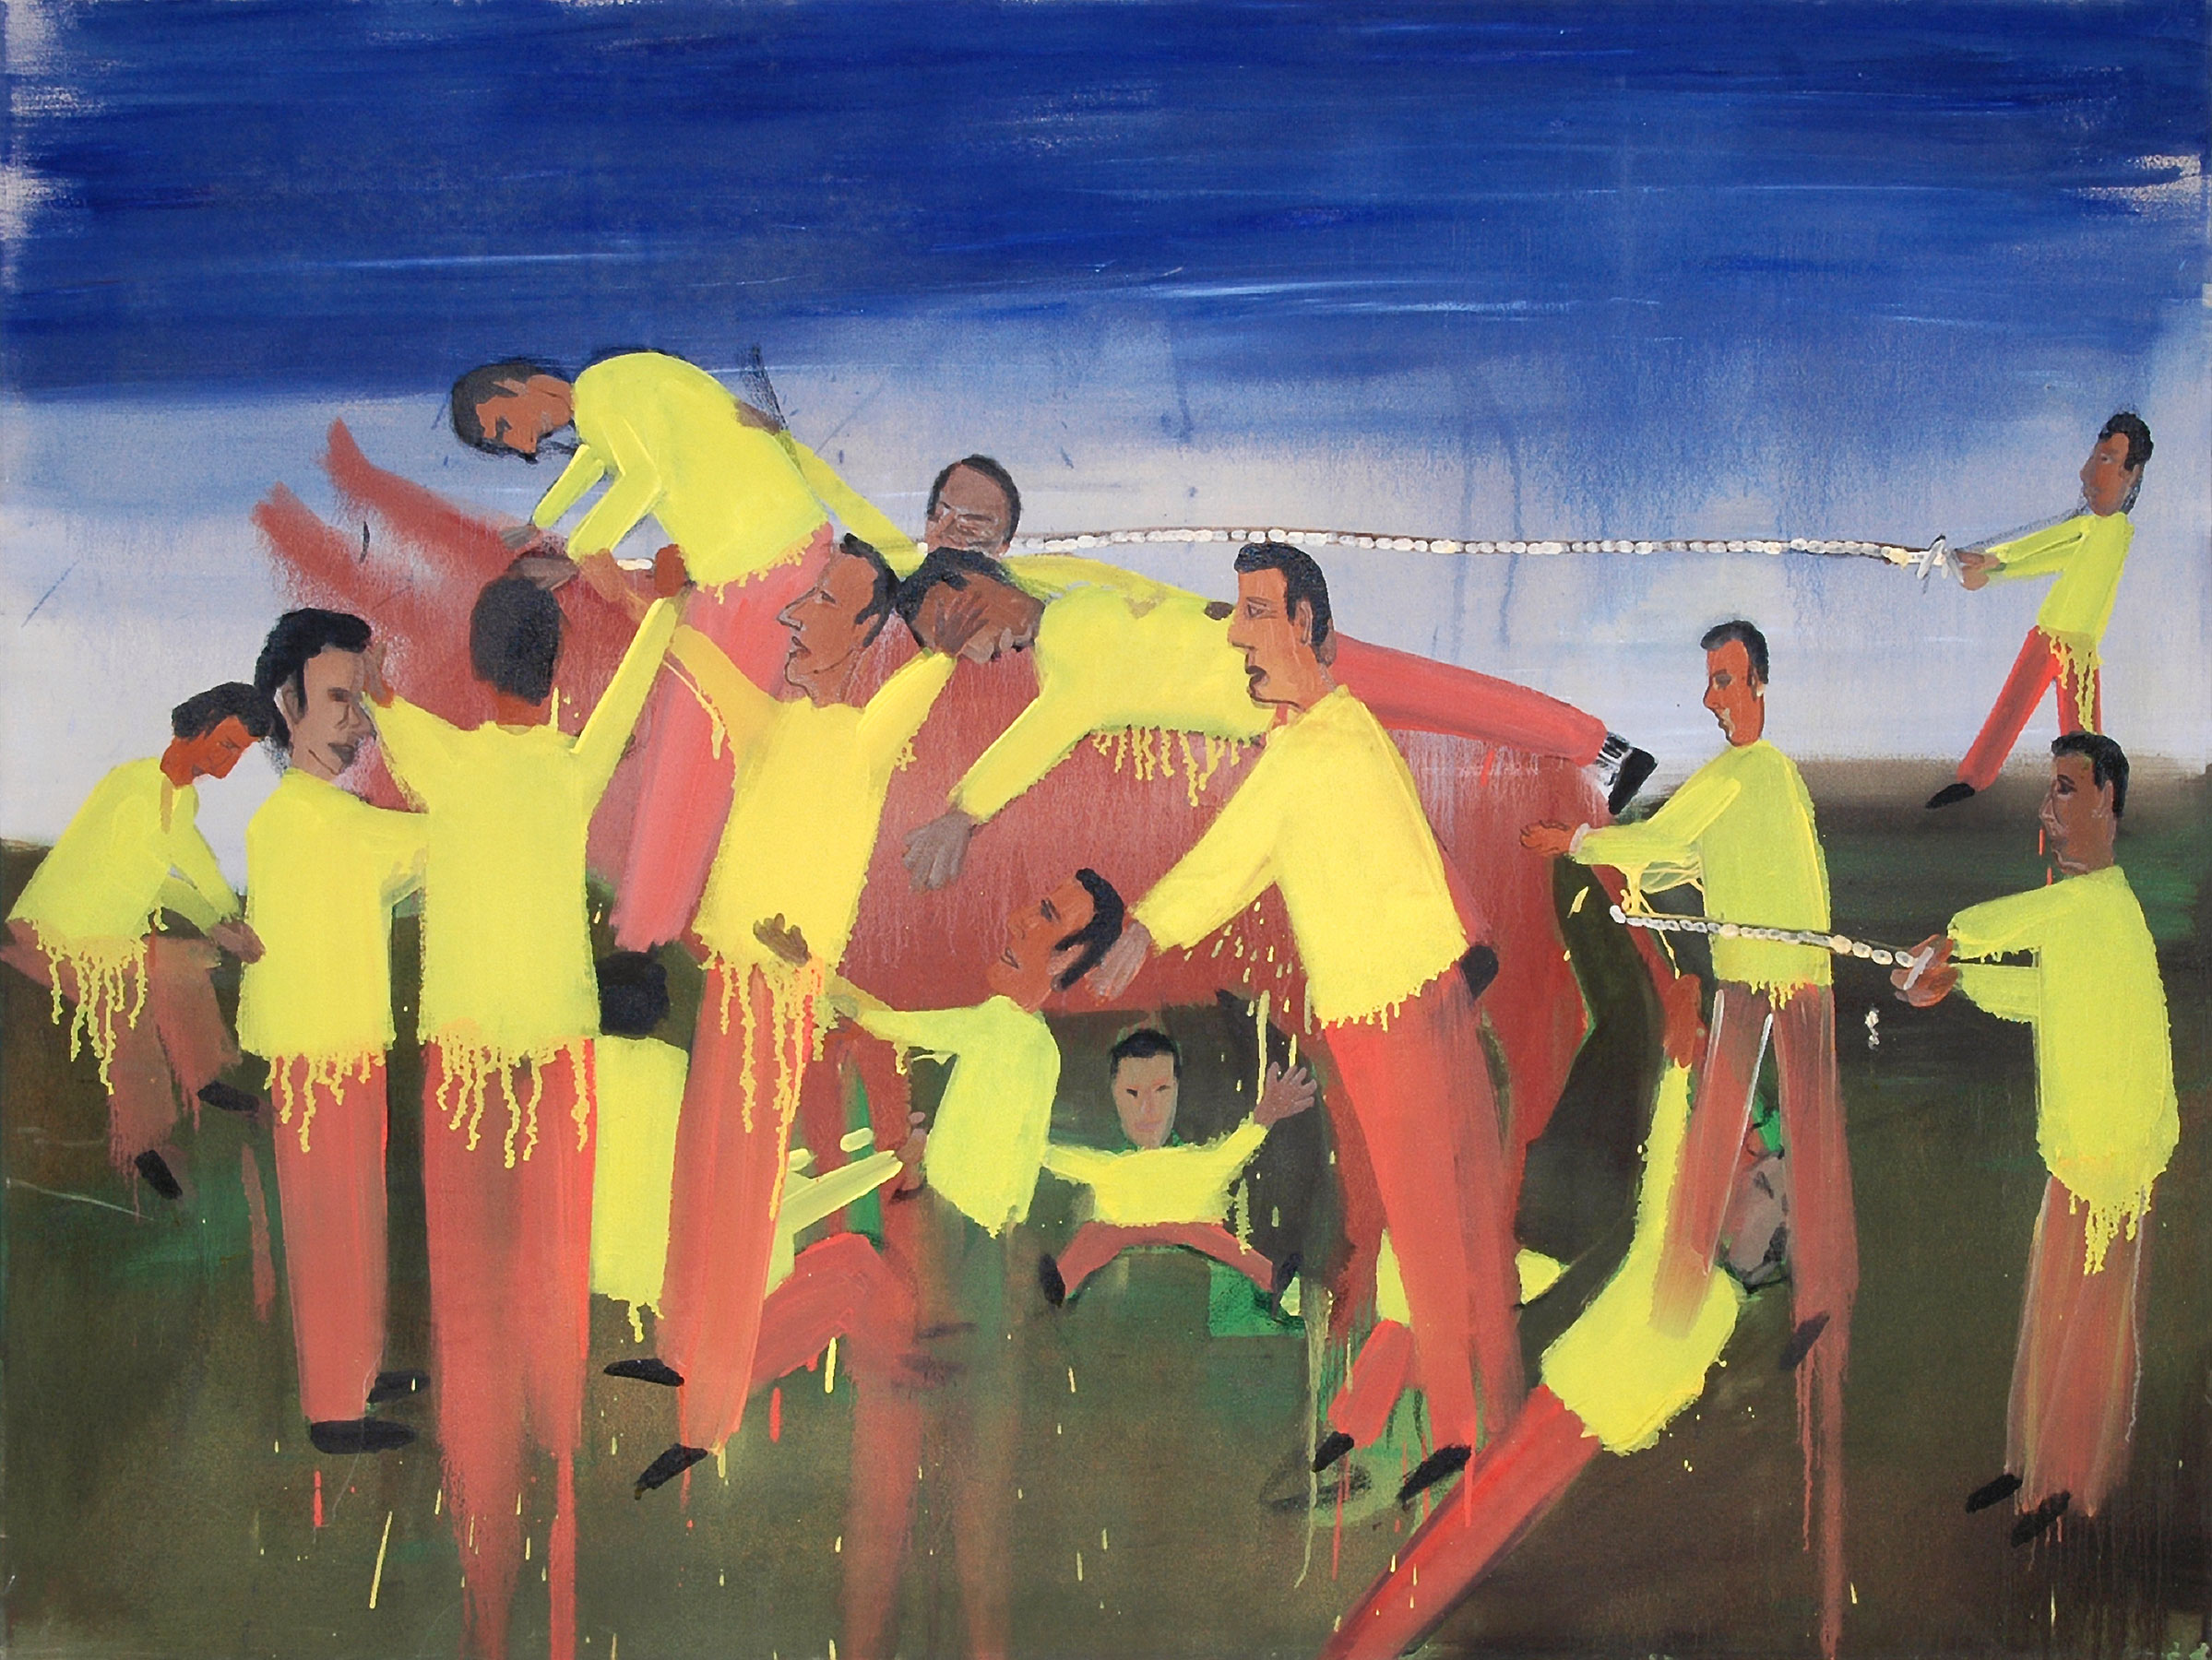 Taming the Beast, 2007    Oil on canvas, 166x120 cm